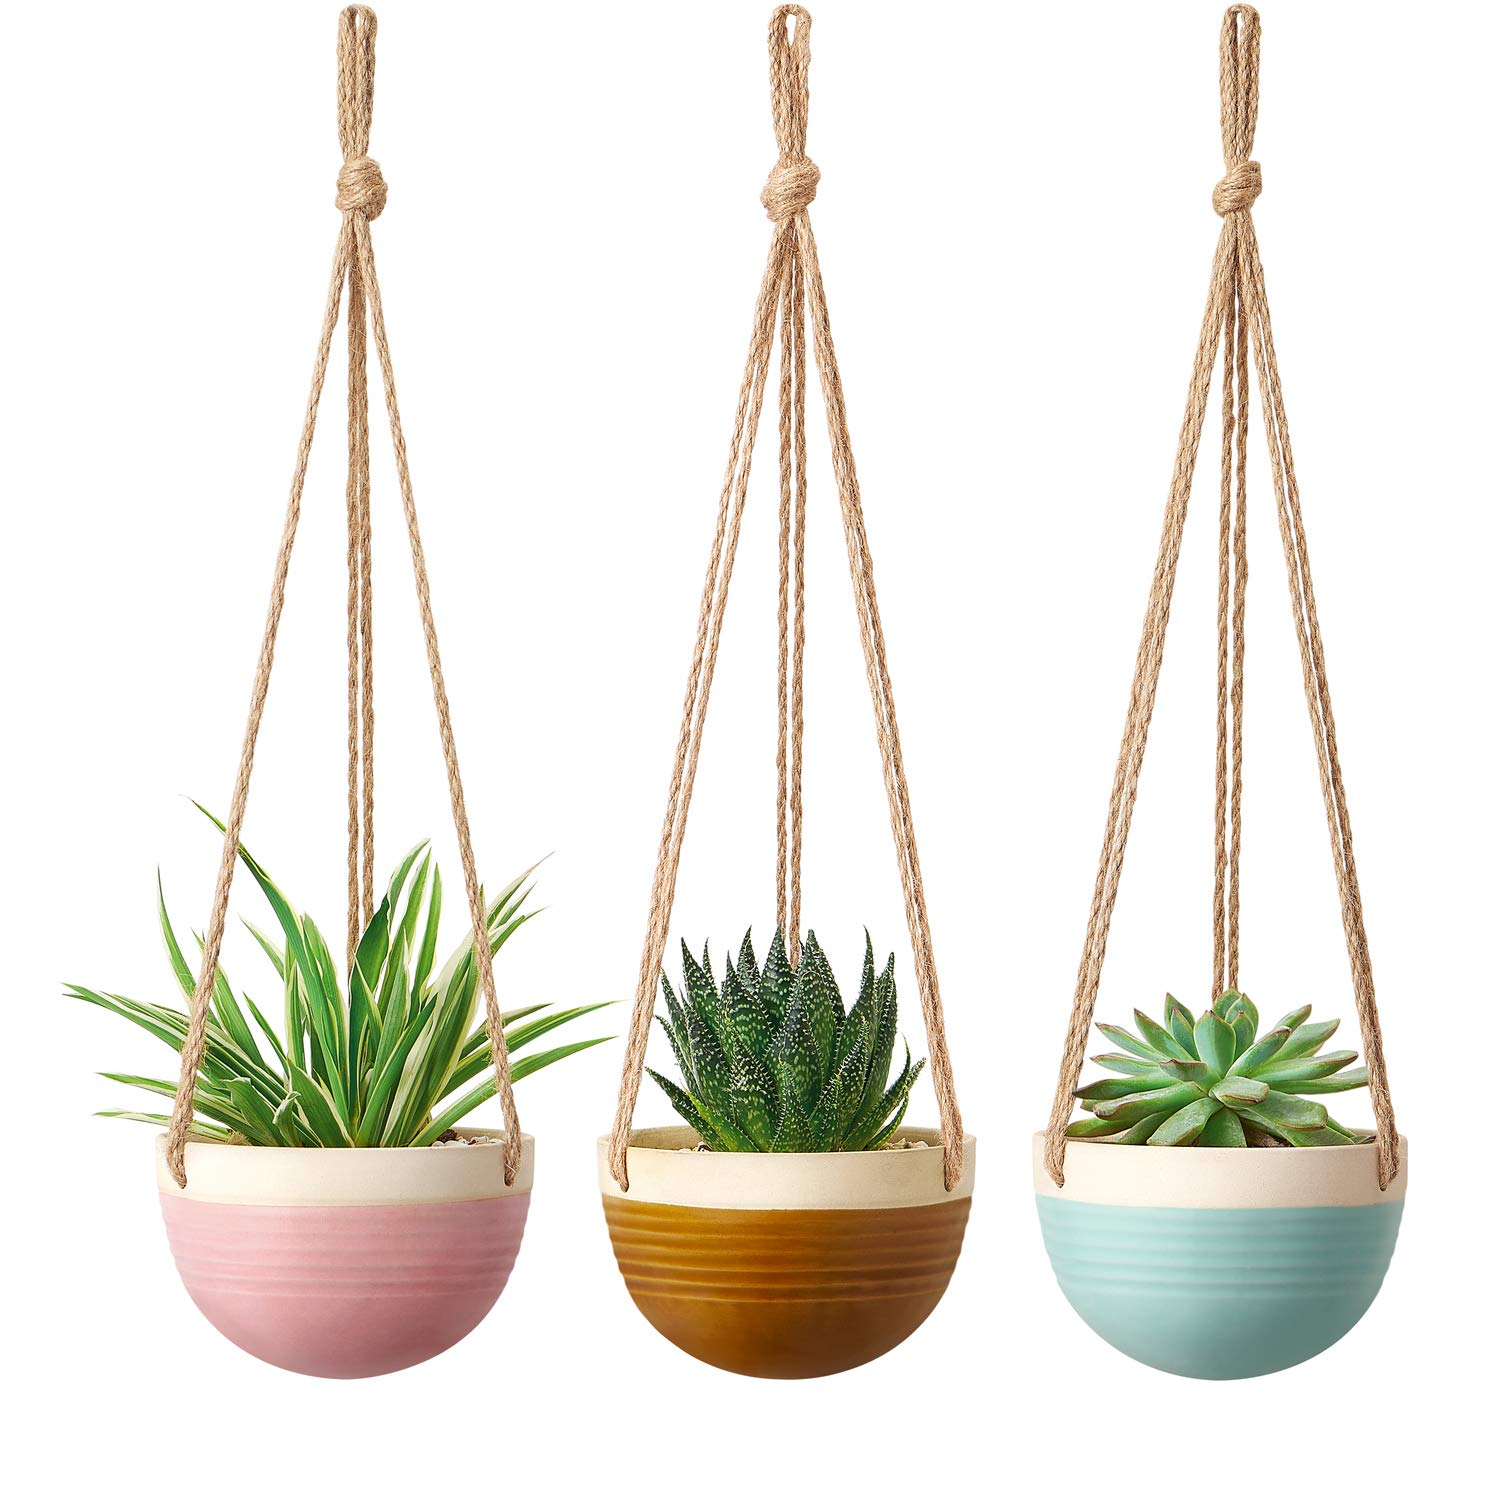 Mkono Ceramic Hanging Planter Colorful Flower Plant Pots 4.5 Inch Round Plant Holder Container with Jute Rope Hanger for Indoor Outdoor Succulent Herbs Ivy Ferns Crawling Plants, 3 Packs